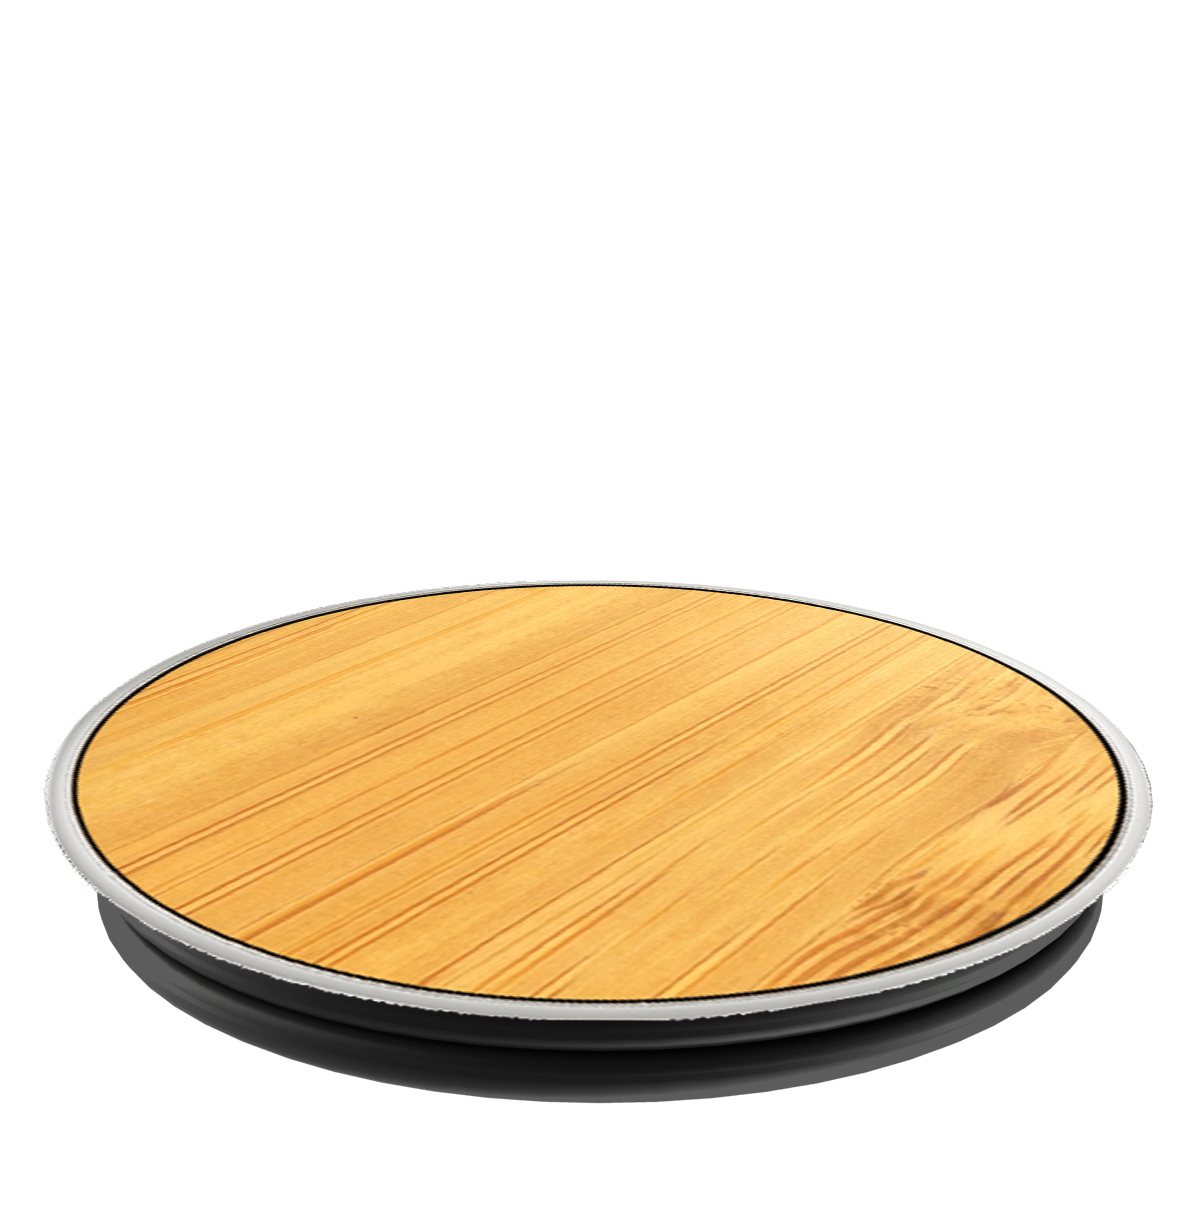 PopSockets Grip Classic Bamboo (Made From Real Wood)